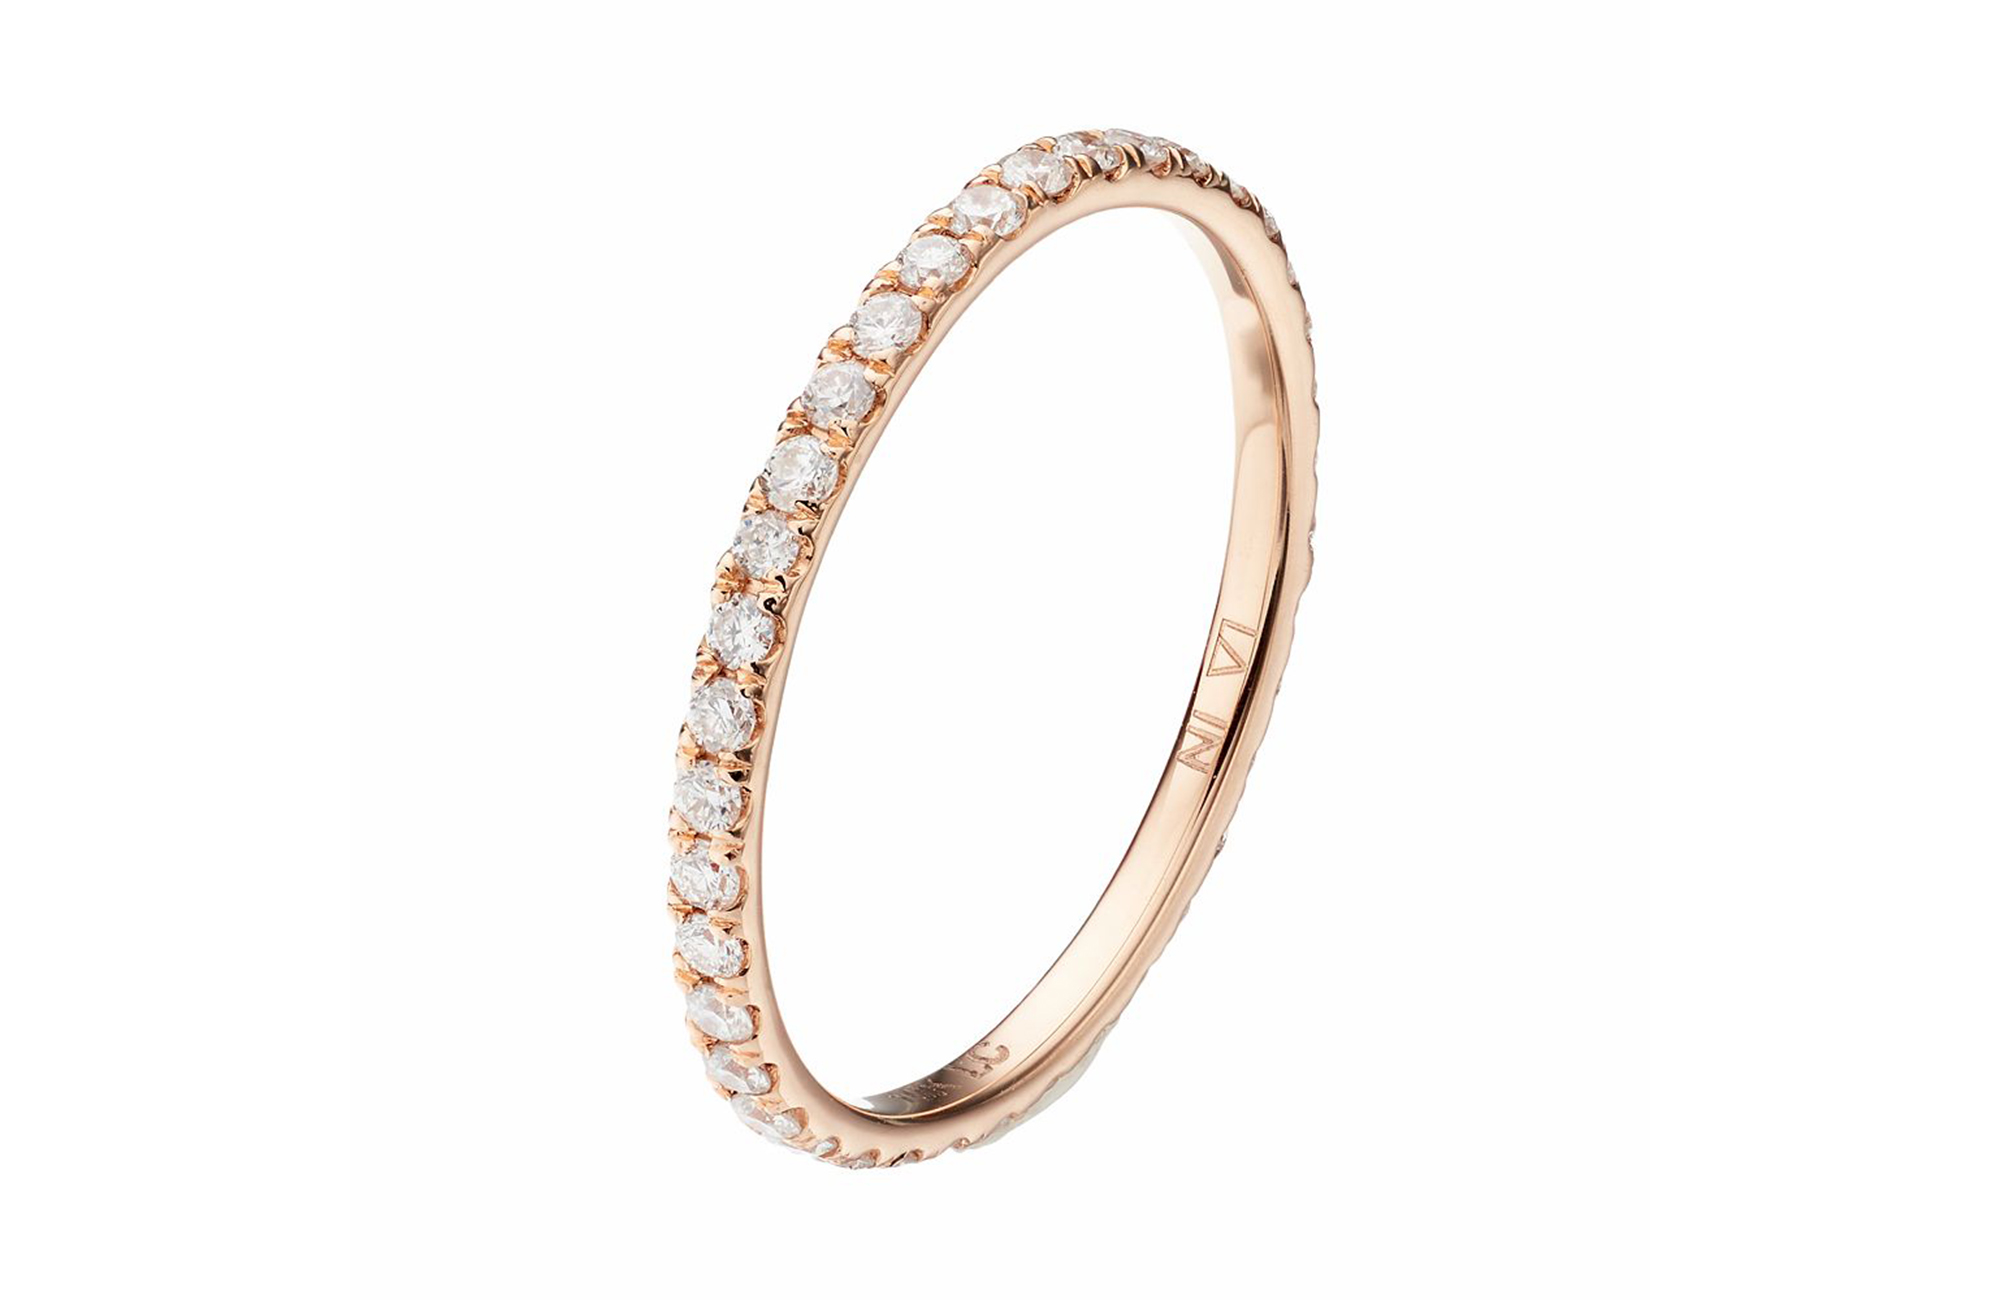 thats the lc lauren conrad x ring 1260 on top and the lc lauren conrad 10k gold 12 carat tw diamond ring 2100 on the bottom - Lauren Conrad Wedding Ring